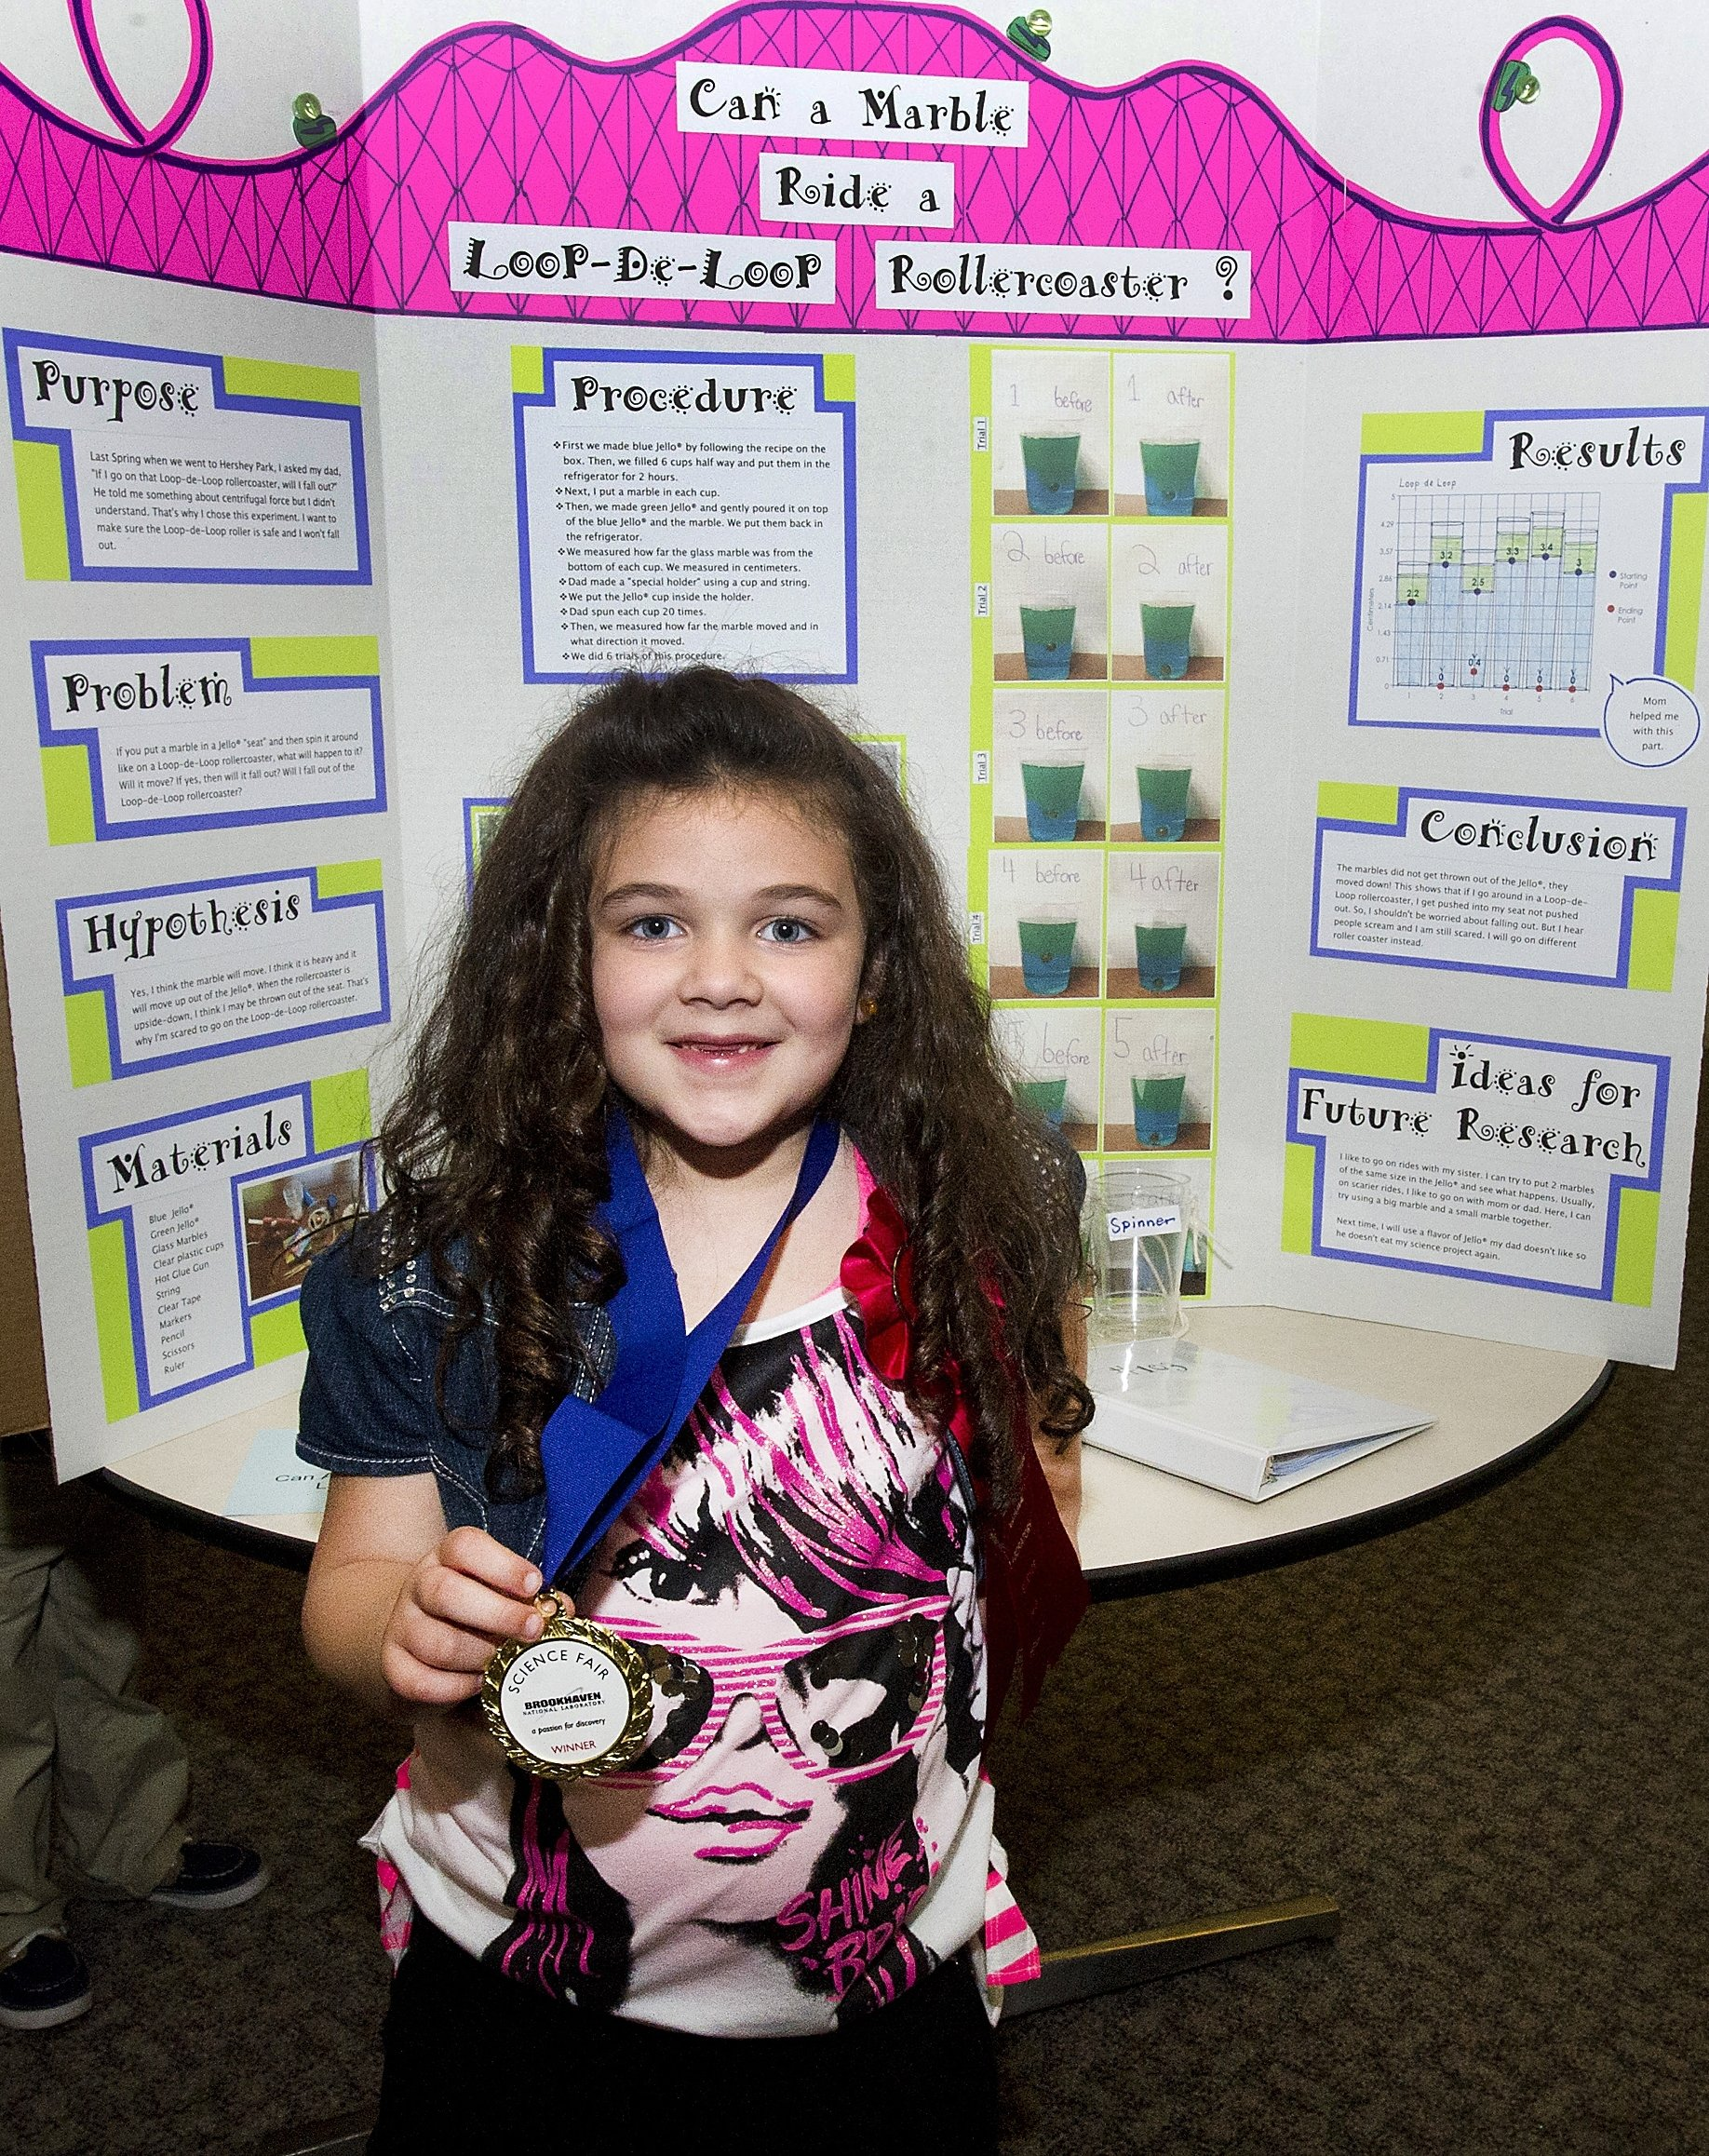 10 Spectacular 1St Grade Science Fair Ideas 1st grade class science projects http www bnl gov newsroom news 2020